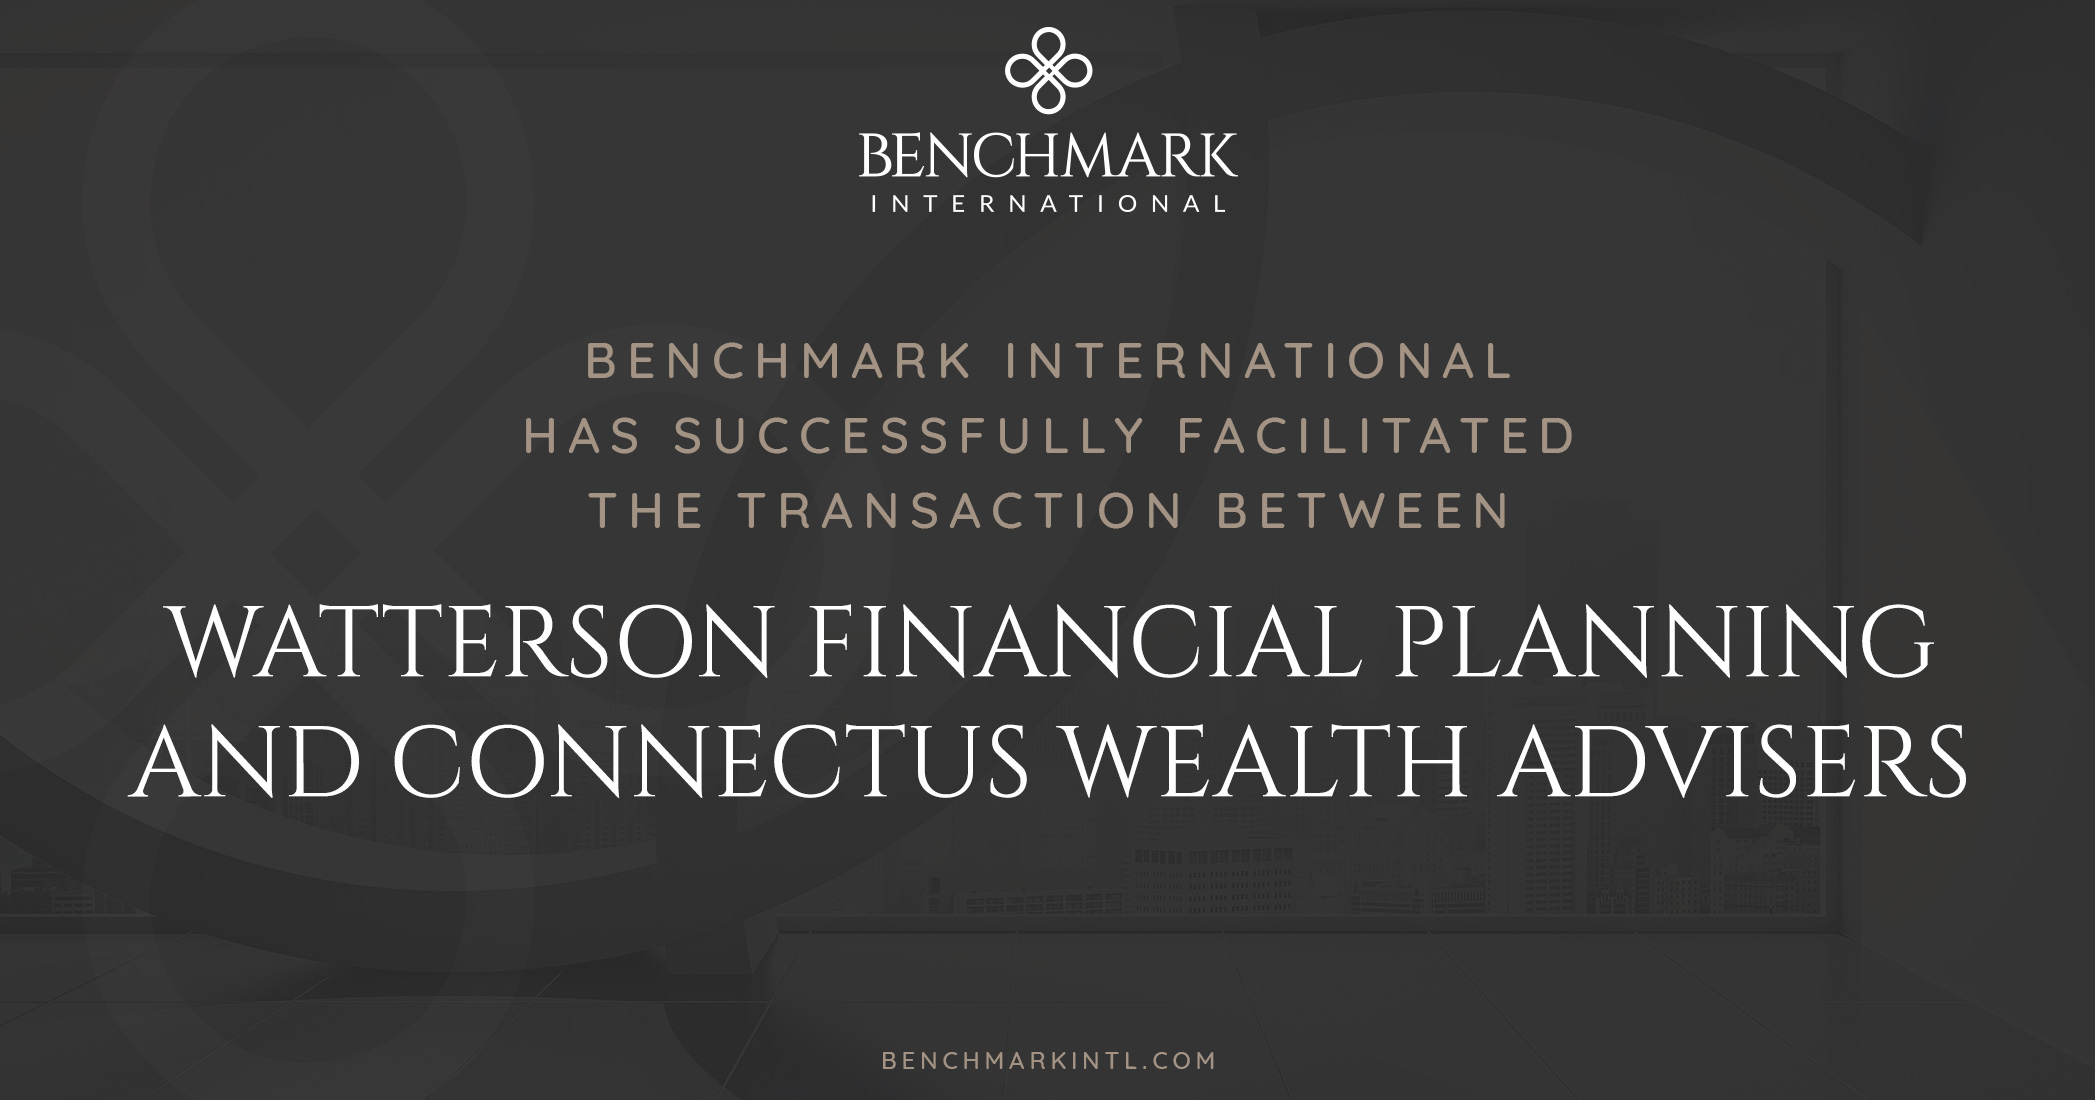 Benchmark International Successfully Facilitated the Transaction Between Watterson Financial Planning and Connectus Wealth Advisers